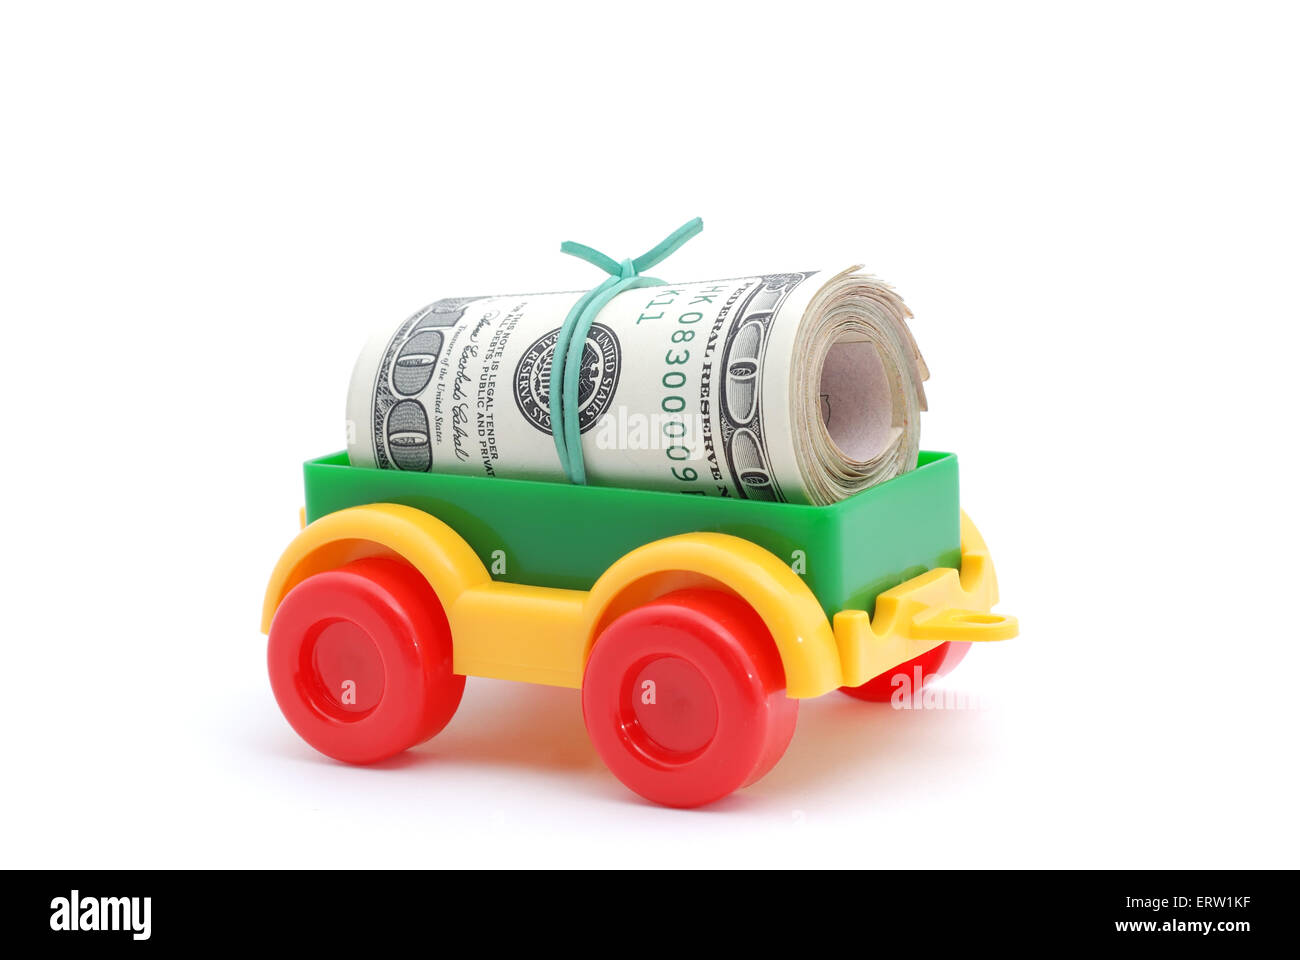 The toy tractor transortation money on white background Stock Photo